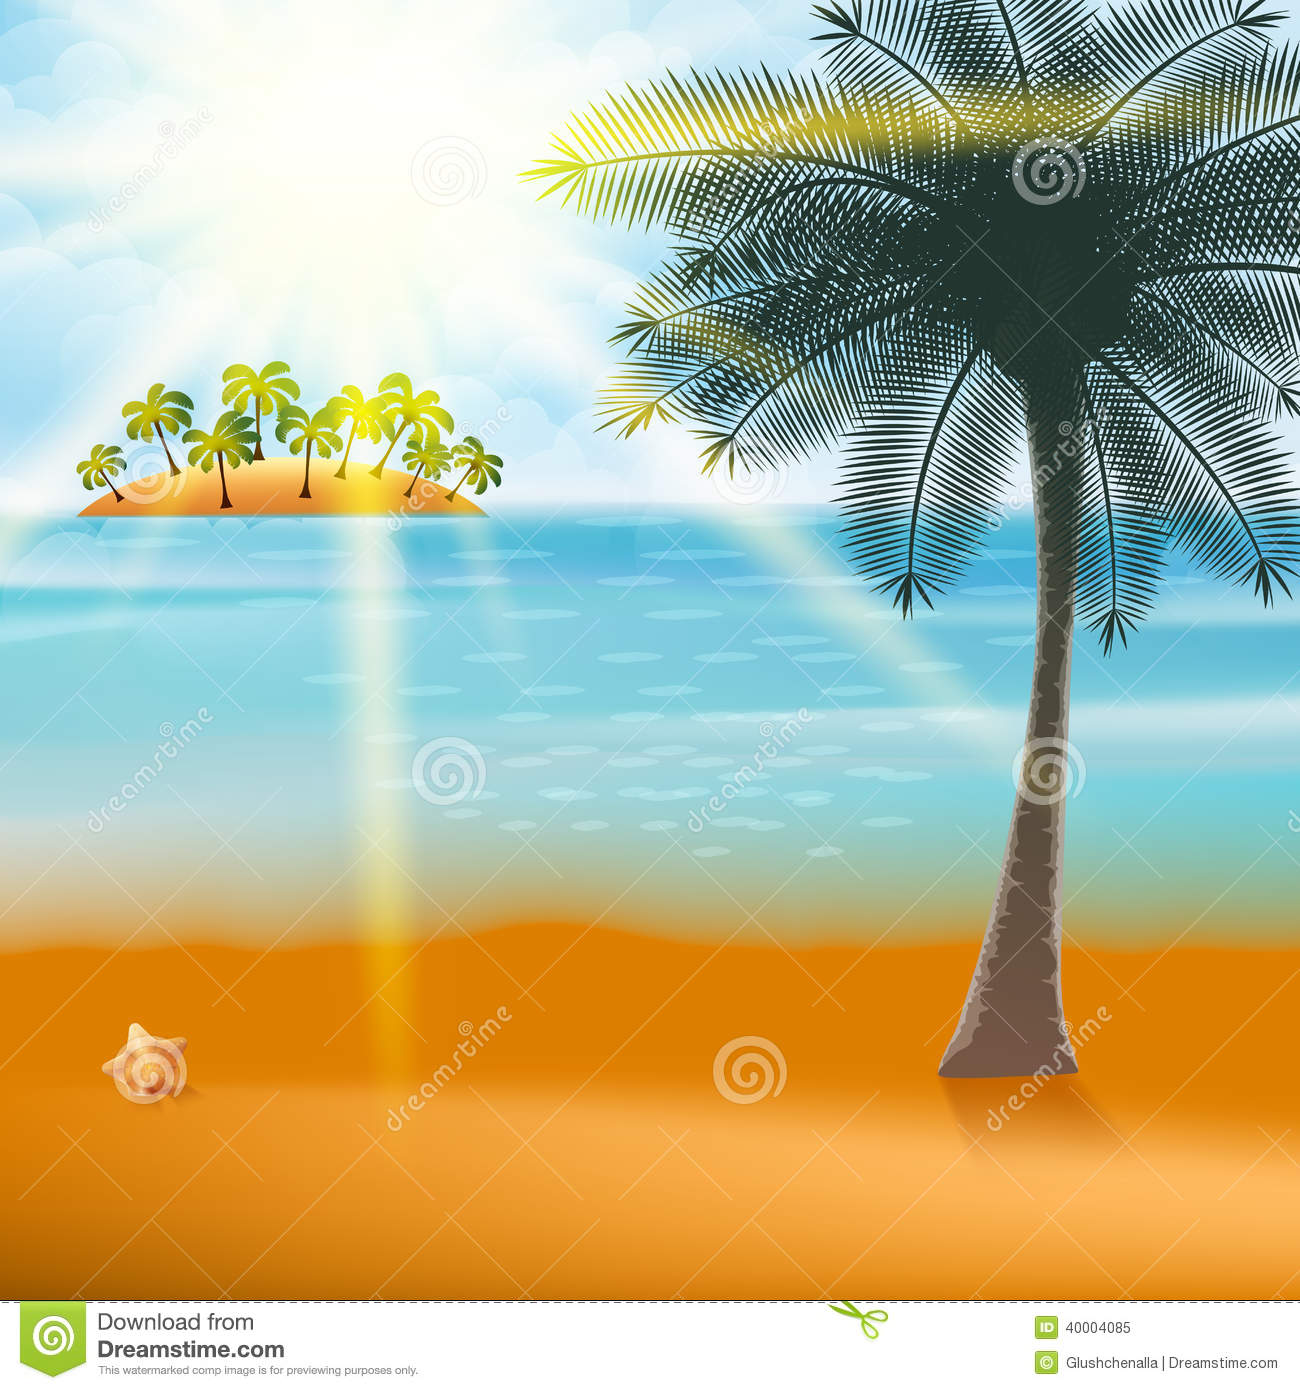 summer holiday flyer design with palm trees  stock vector